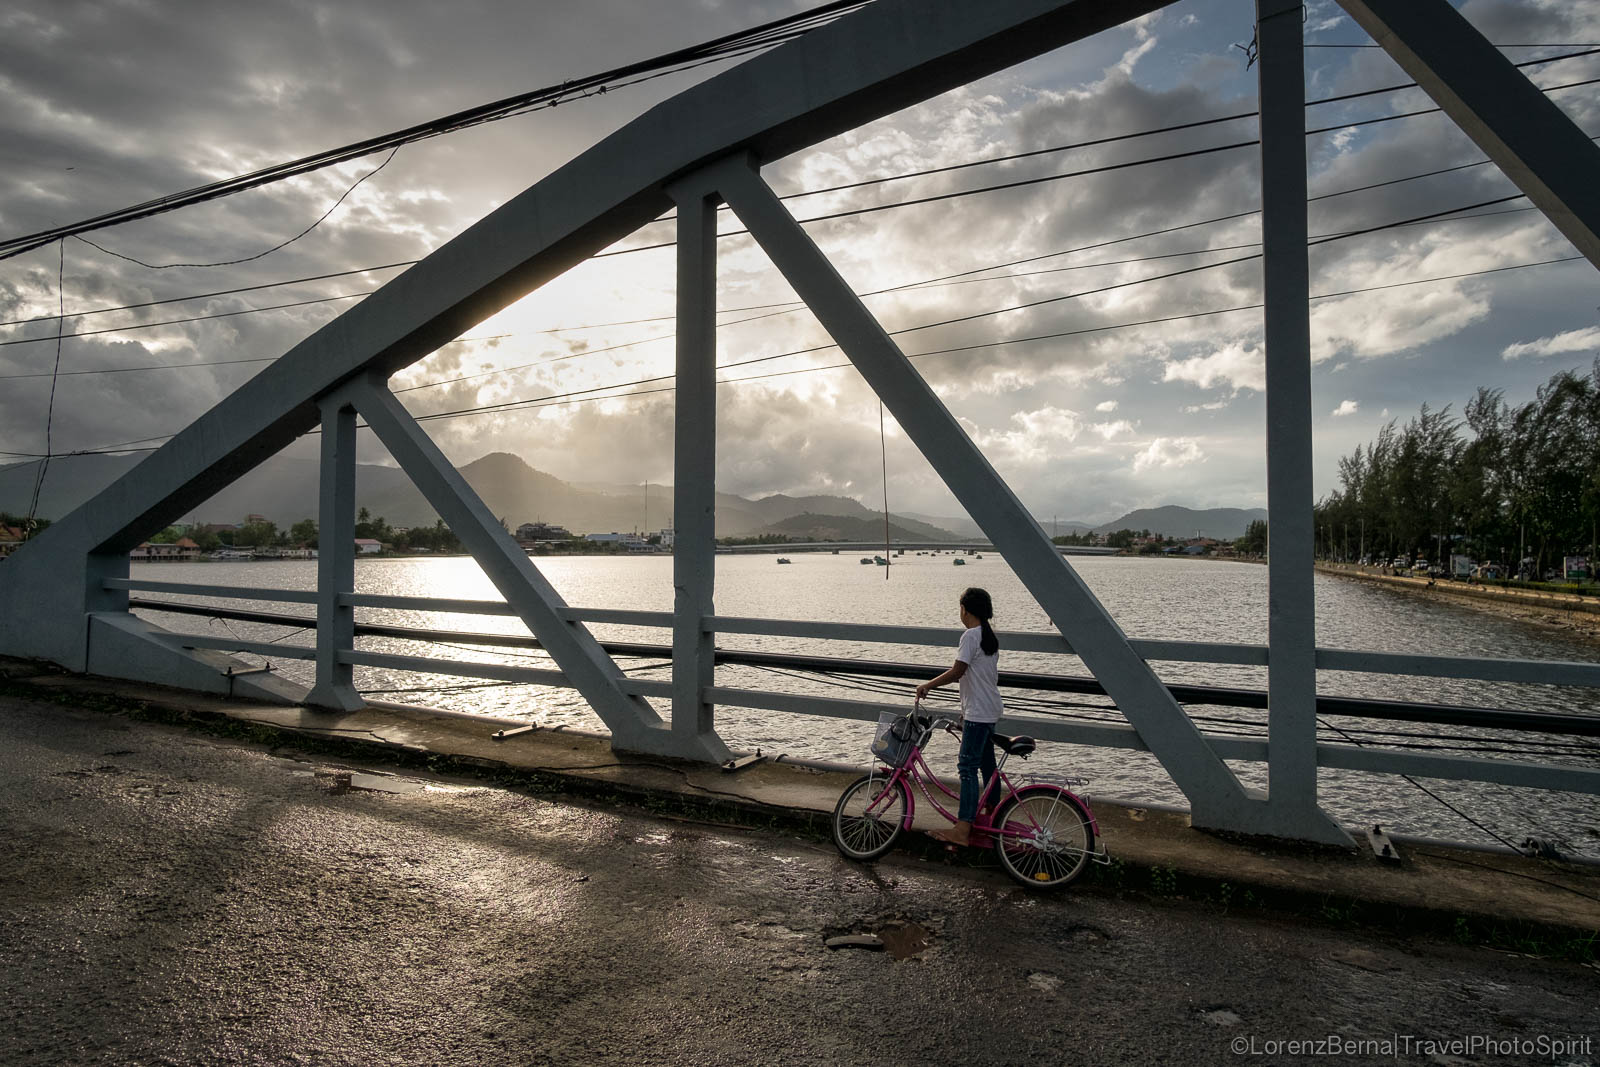 A local girl has stopped to watch the fishermen boats passing under Kampot old bridge, Cambodia